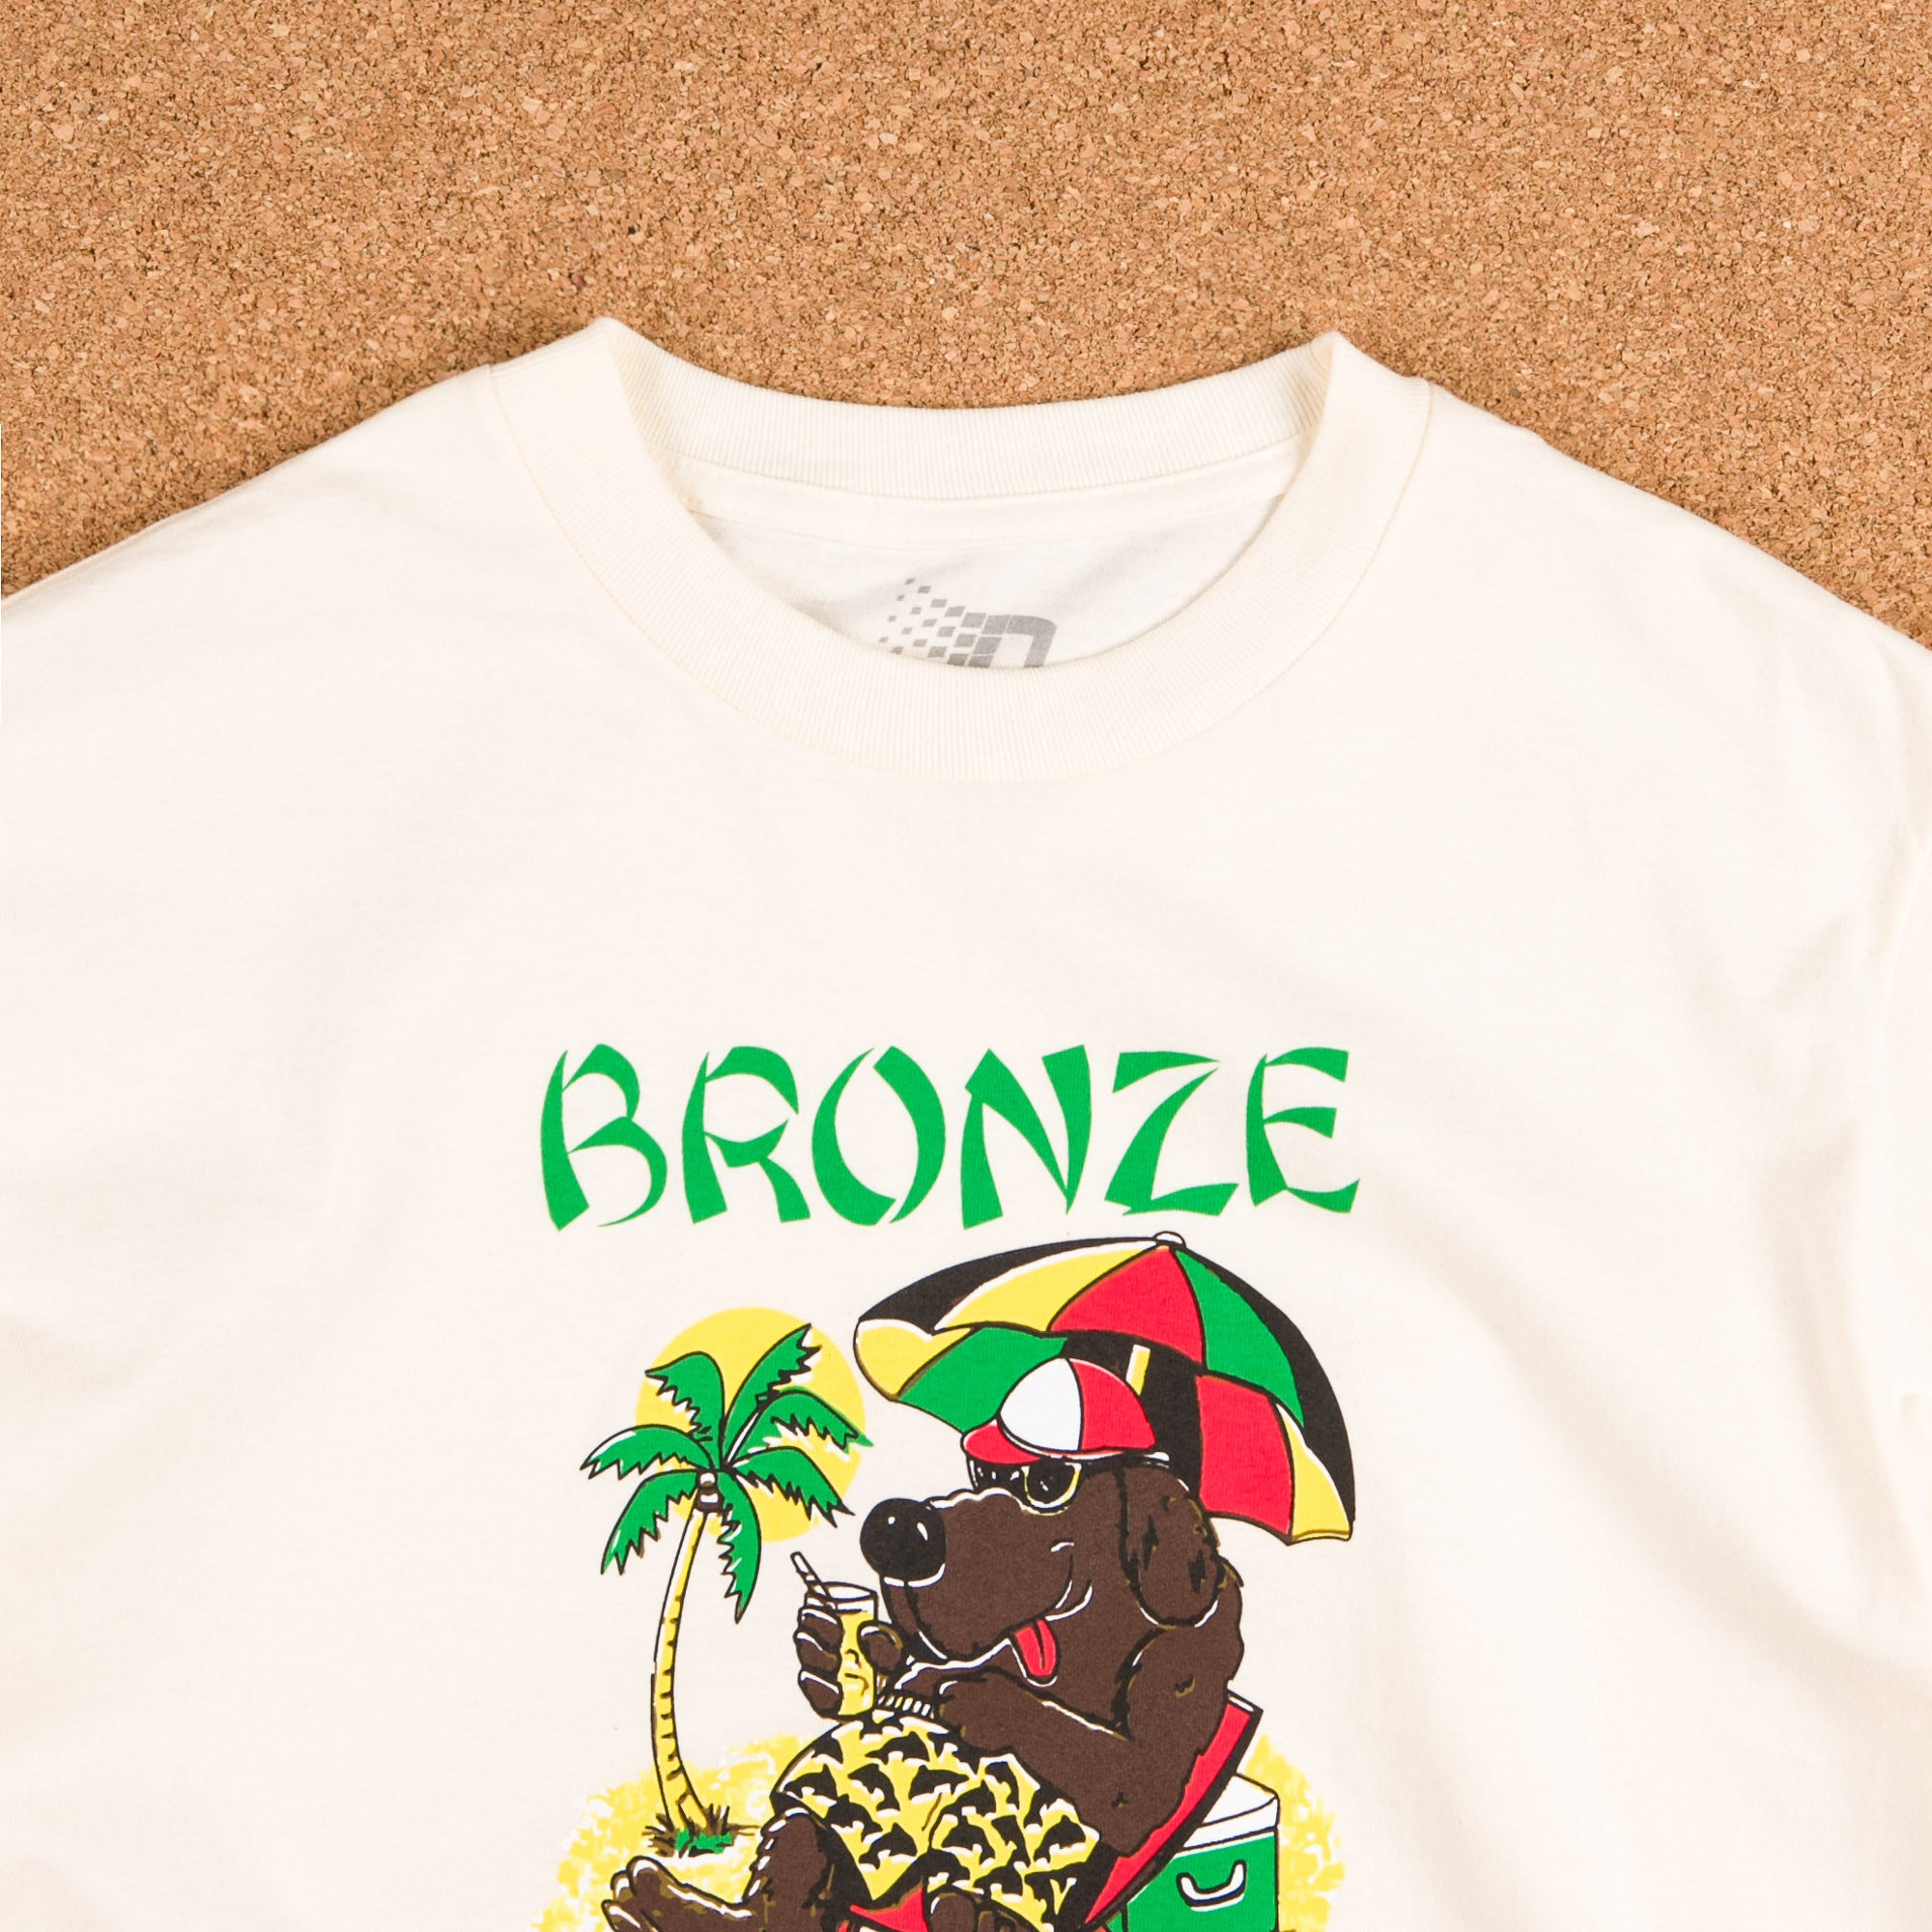 Bronze 56k Vacation T-Shirt - Creme